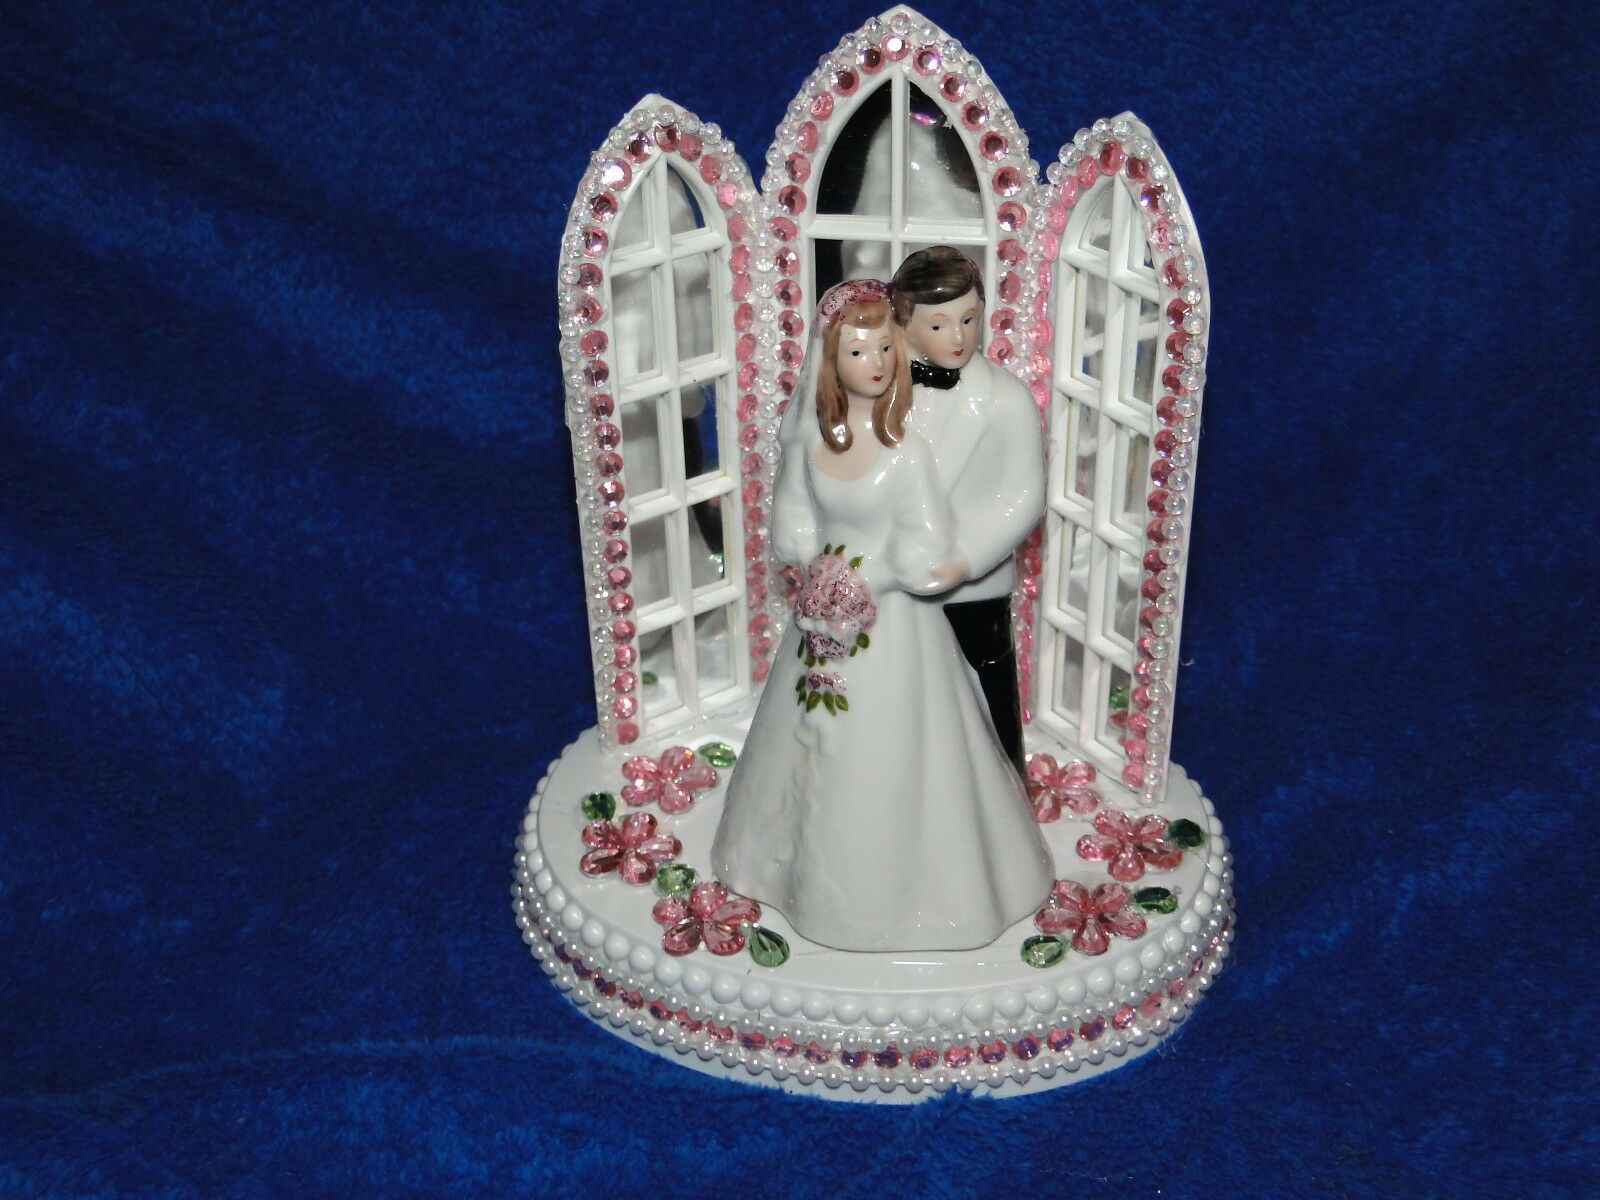 New Chapel Church Mirroruge Windows Cake topper with Bride & Groom & rose Decor